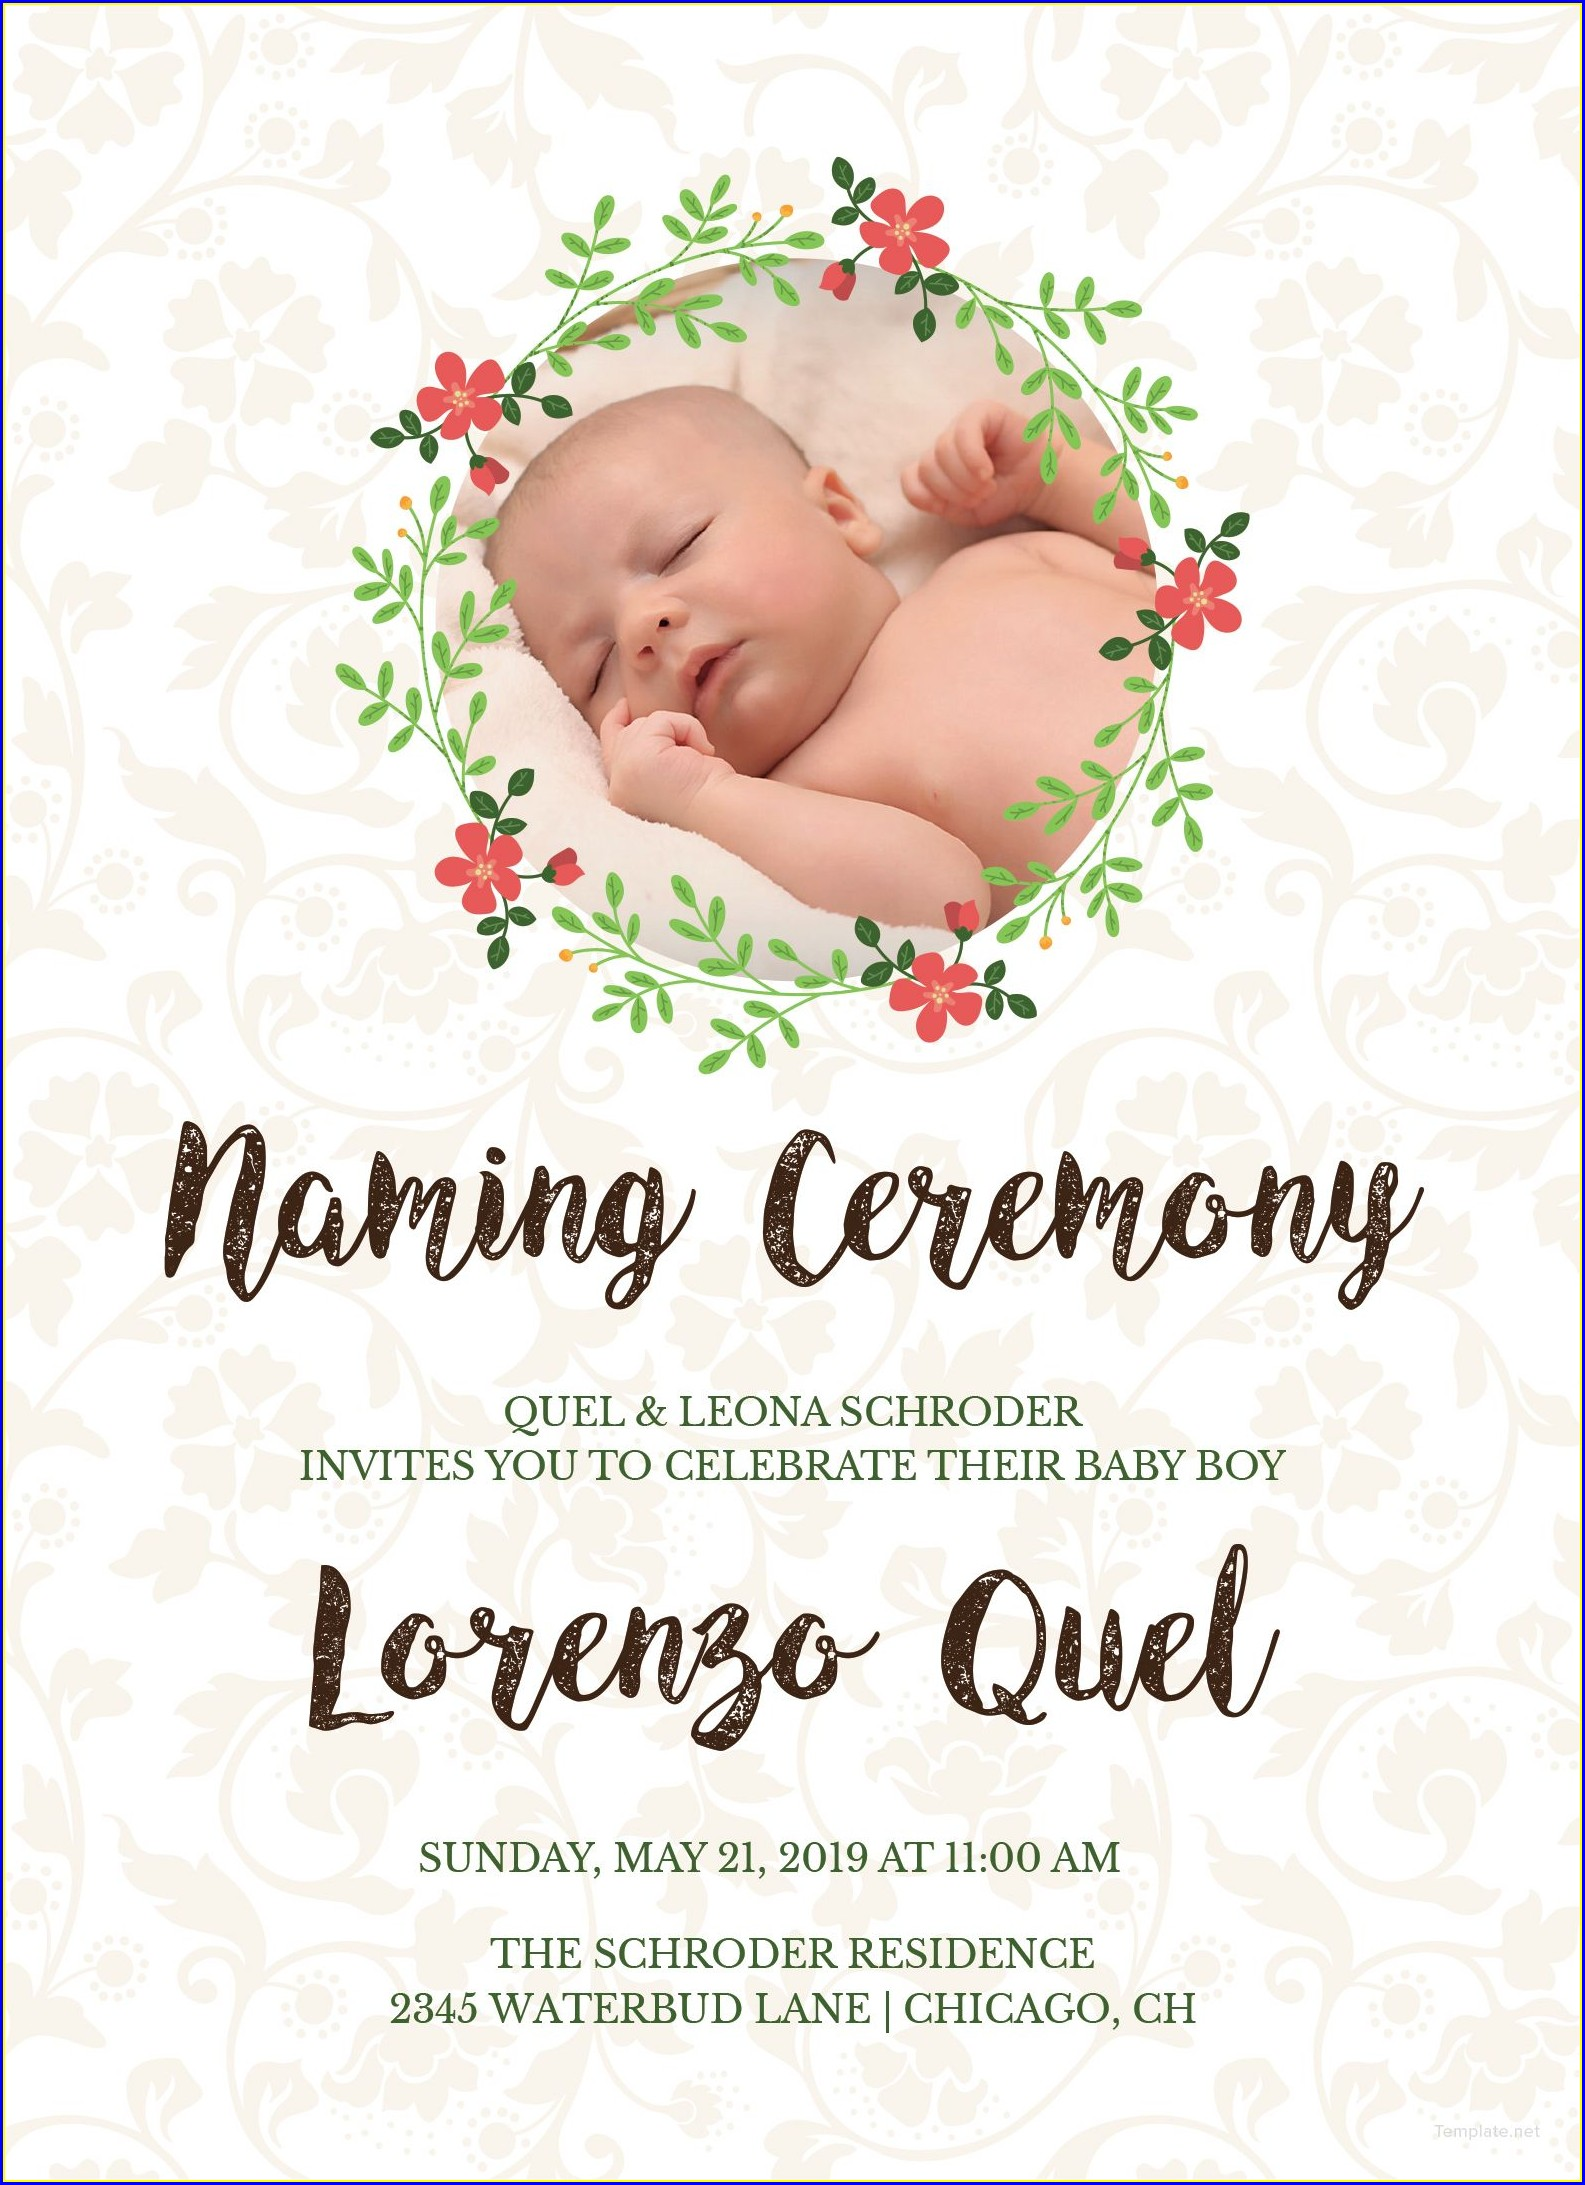 Baby Boy Naming Ceremony Invitation Indian